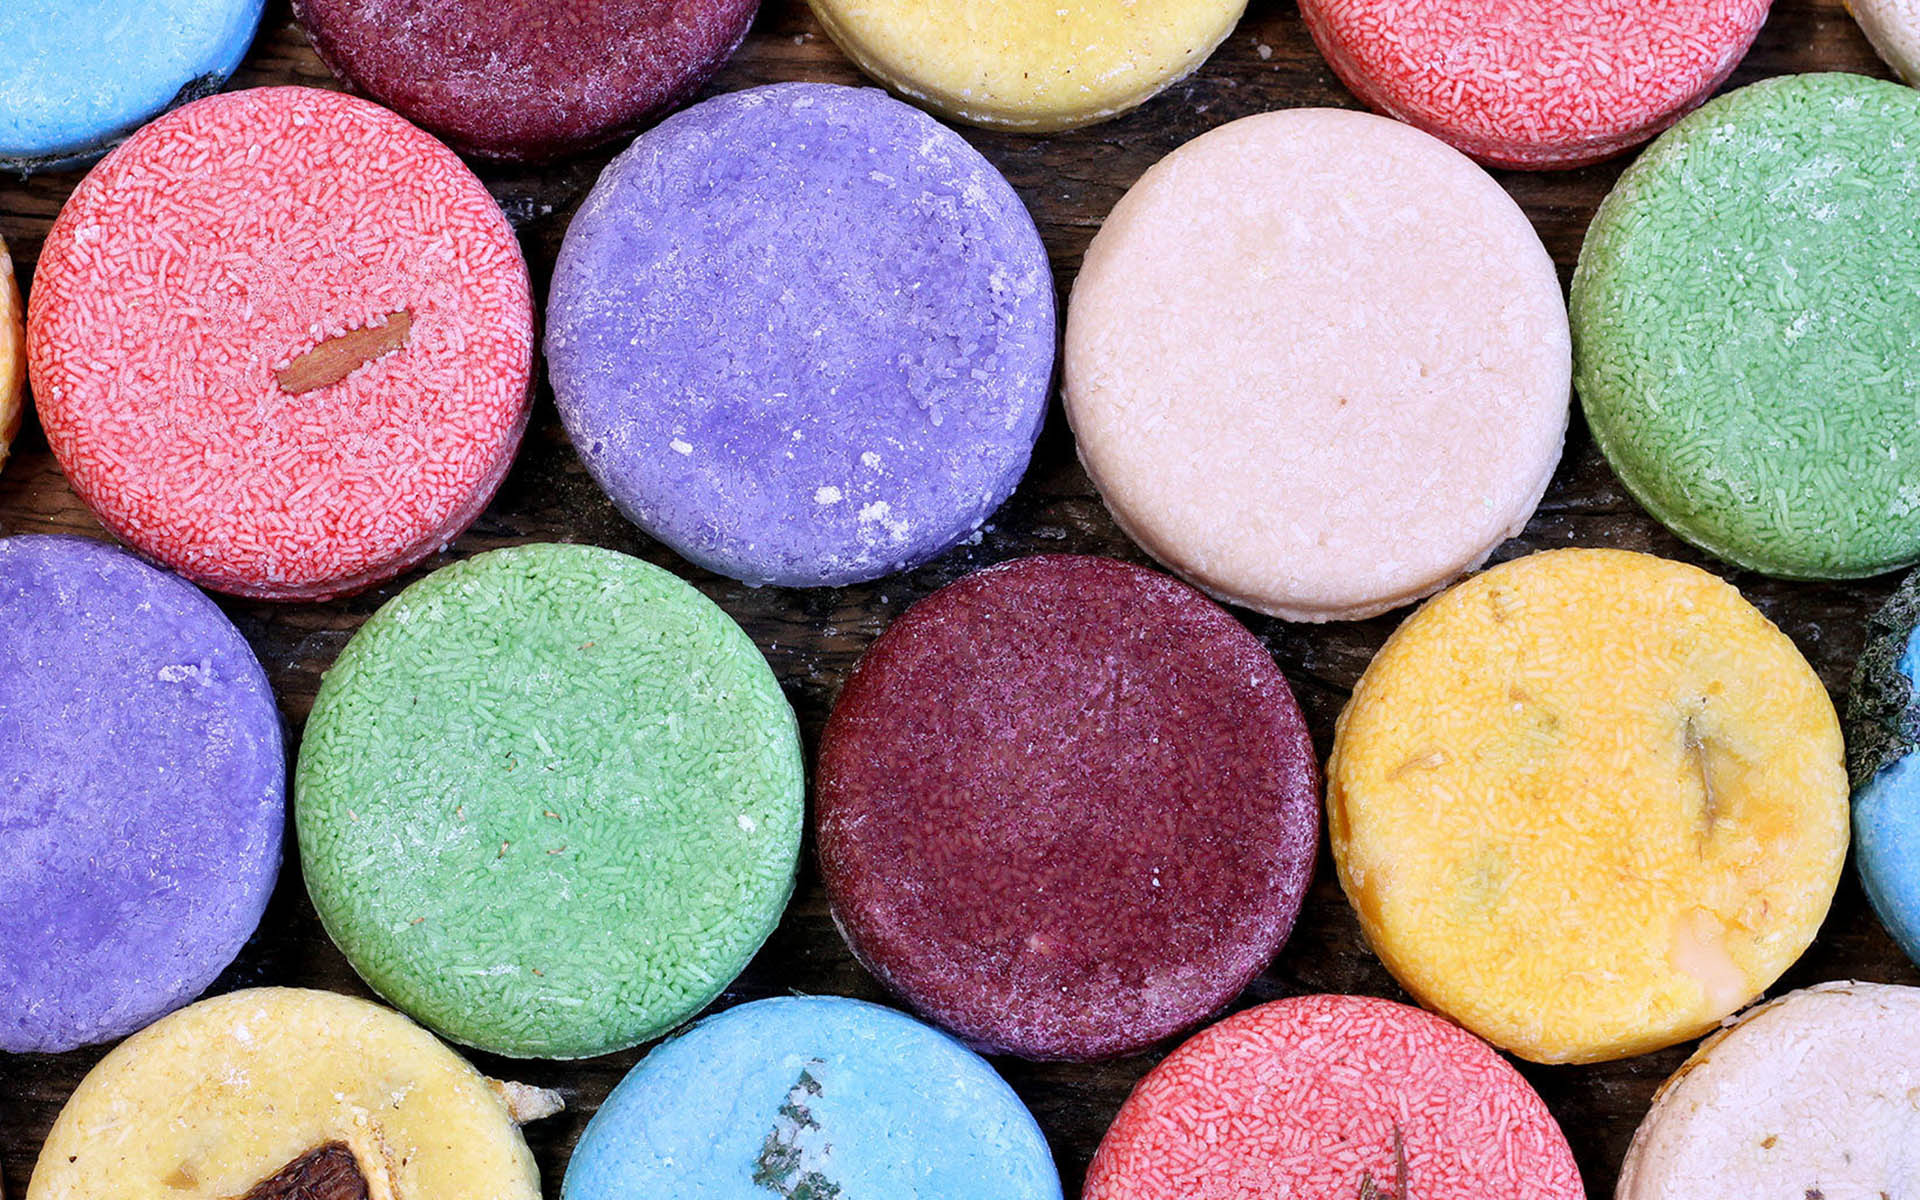 Cosmetic Giant Lush To Accept Bitcoin